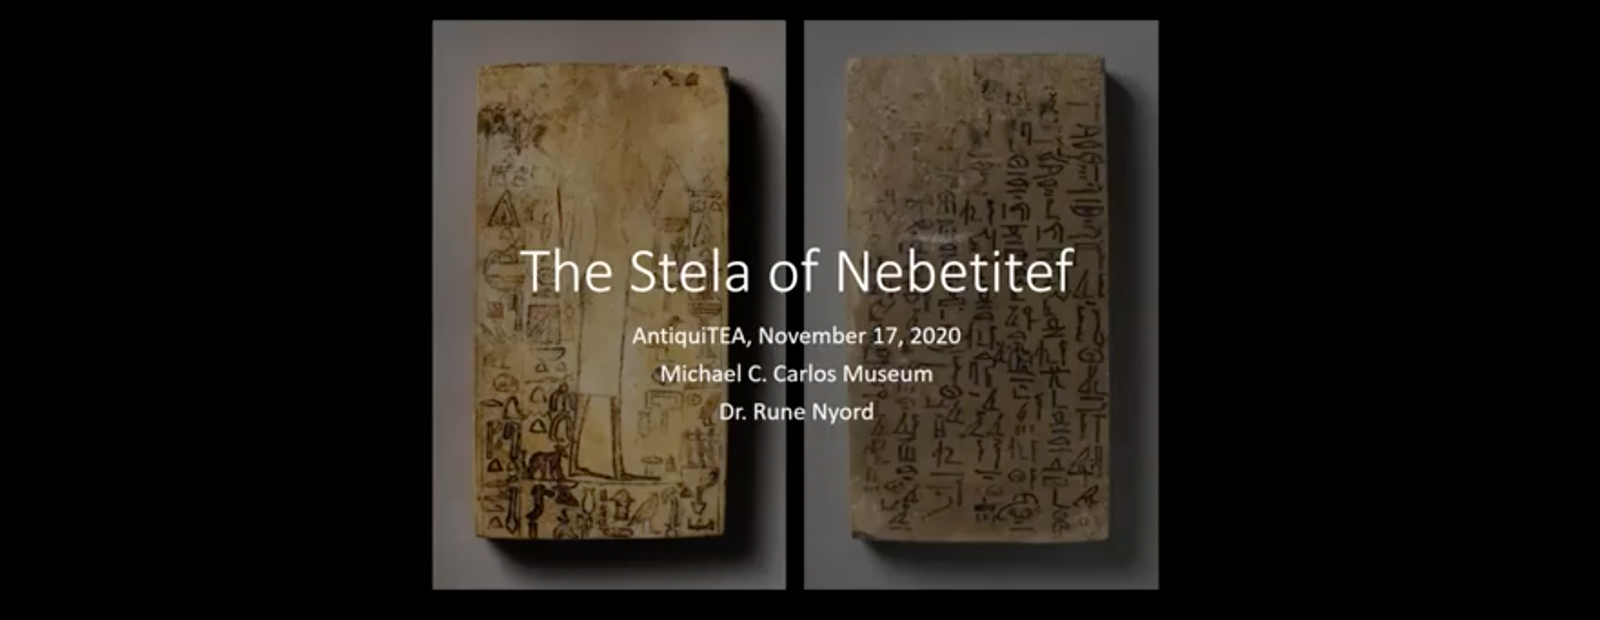 Two sides of the Stela of Nebetitef